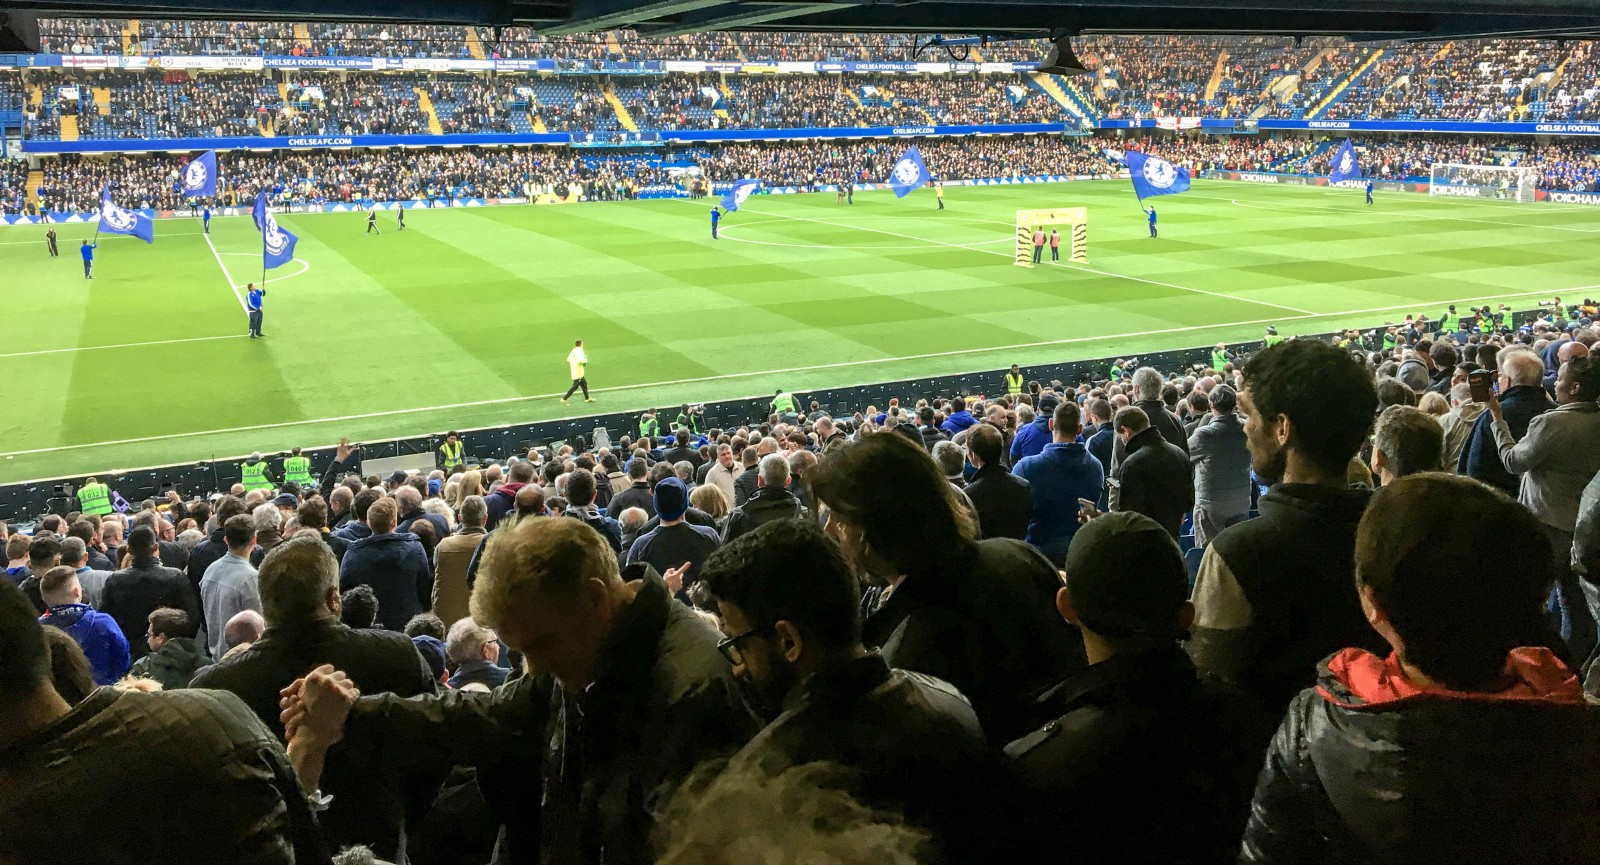 Chelsea game